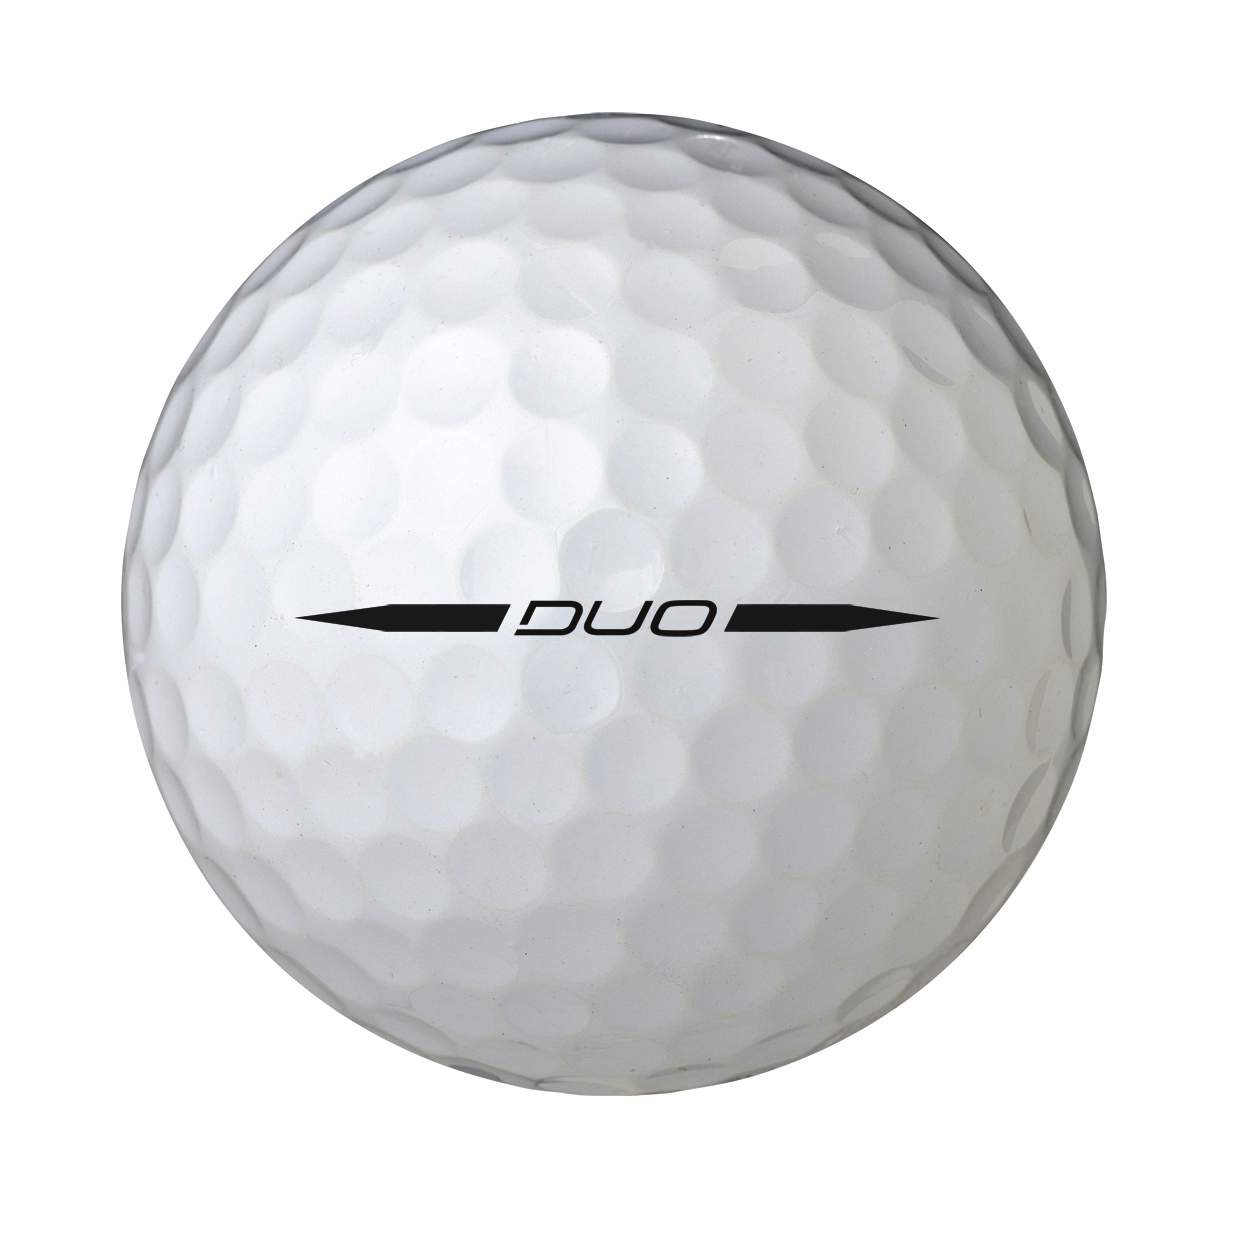 Amazon.com : Wilson Staff Duo Golf Balls 12pk White ...